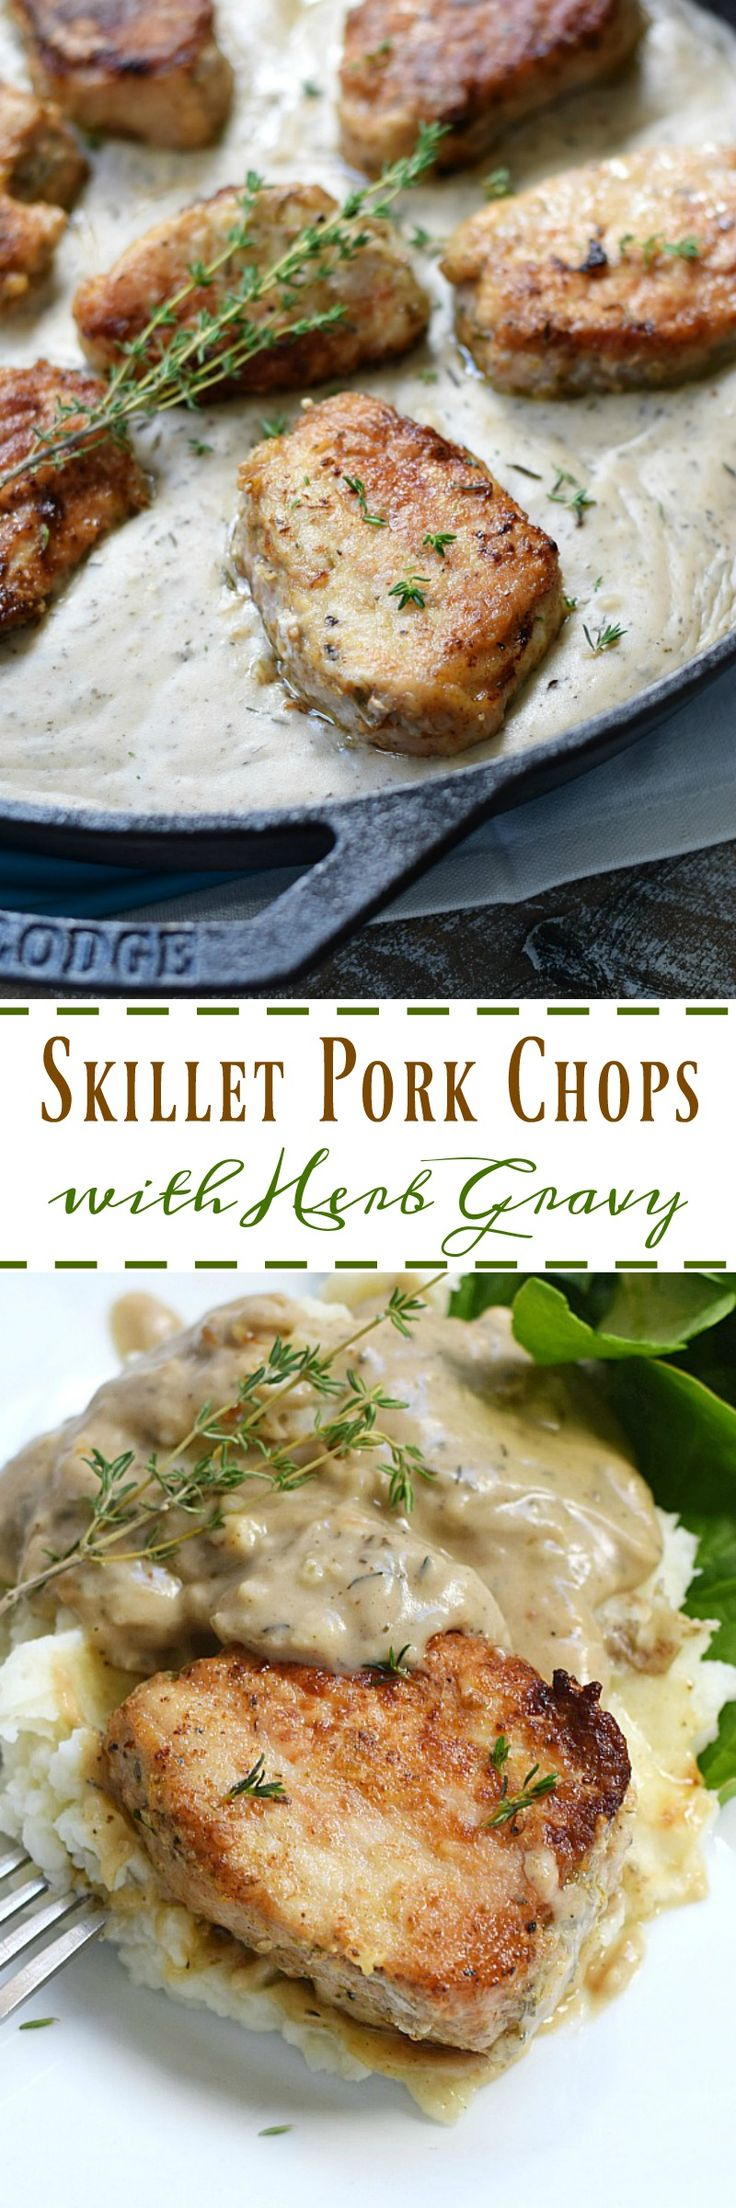 Skillet Pork Chops with Herb Gravy is the perfect 30 minute meal for busy families on the go | cookingwithcurls.com #sponsored #ad @SmithfieldFoods